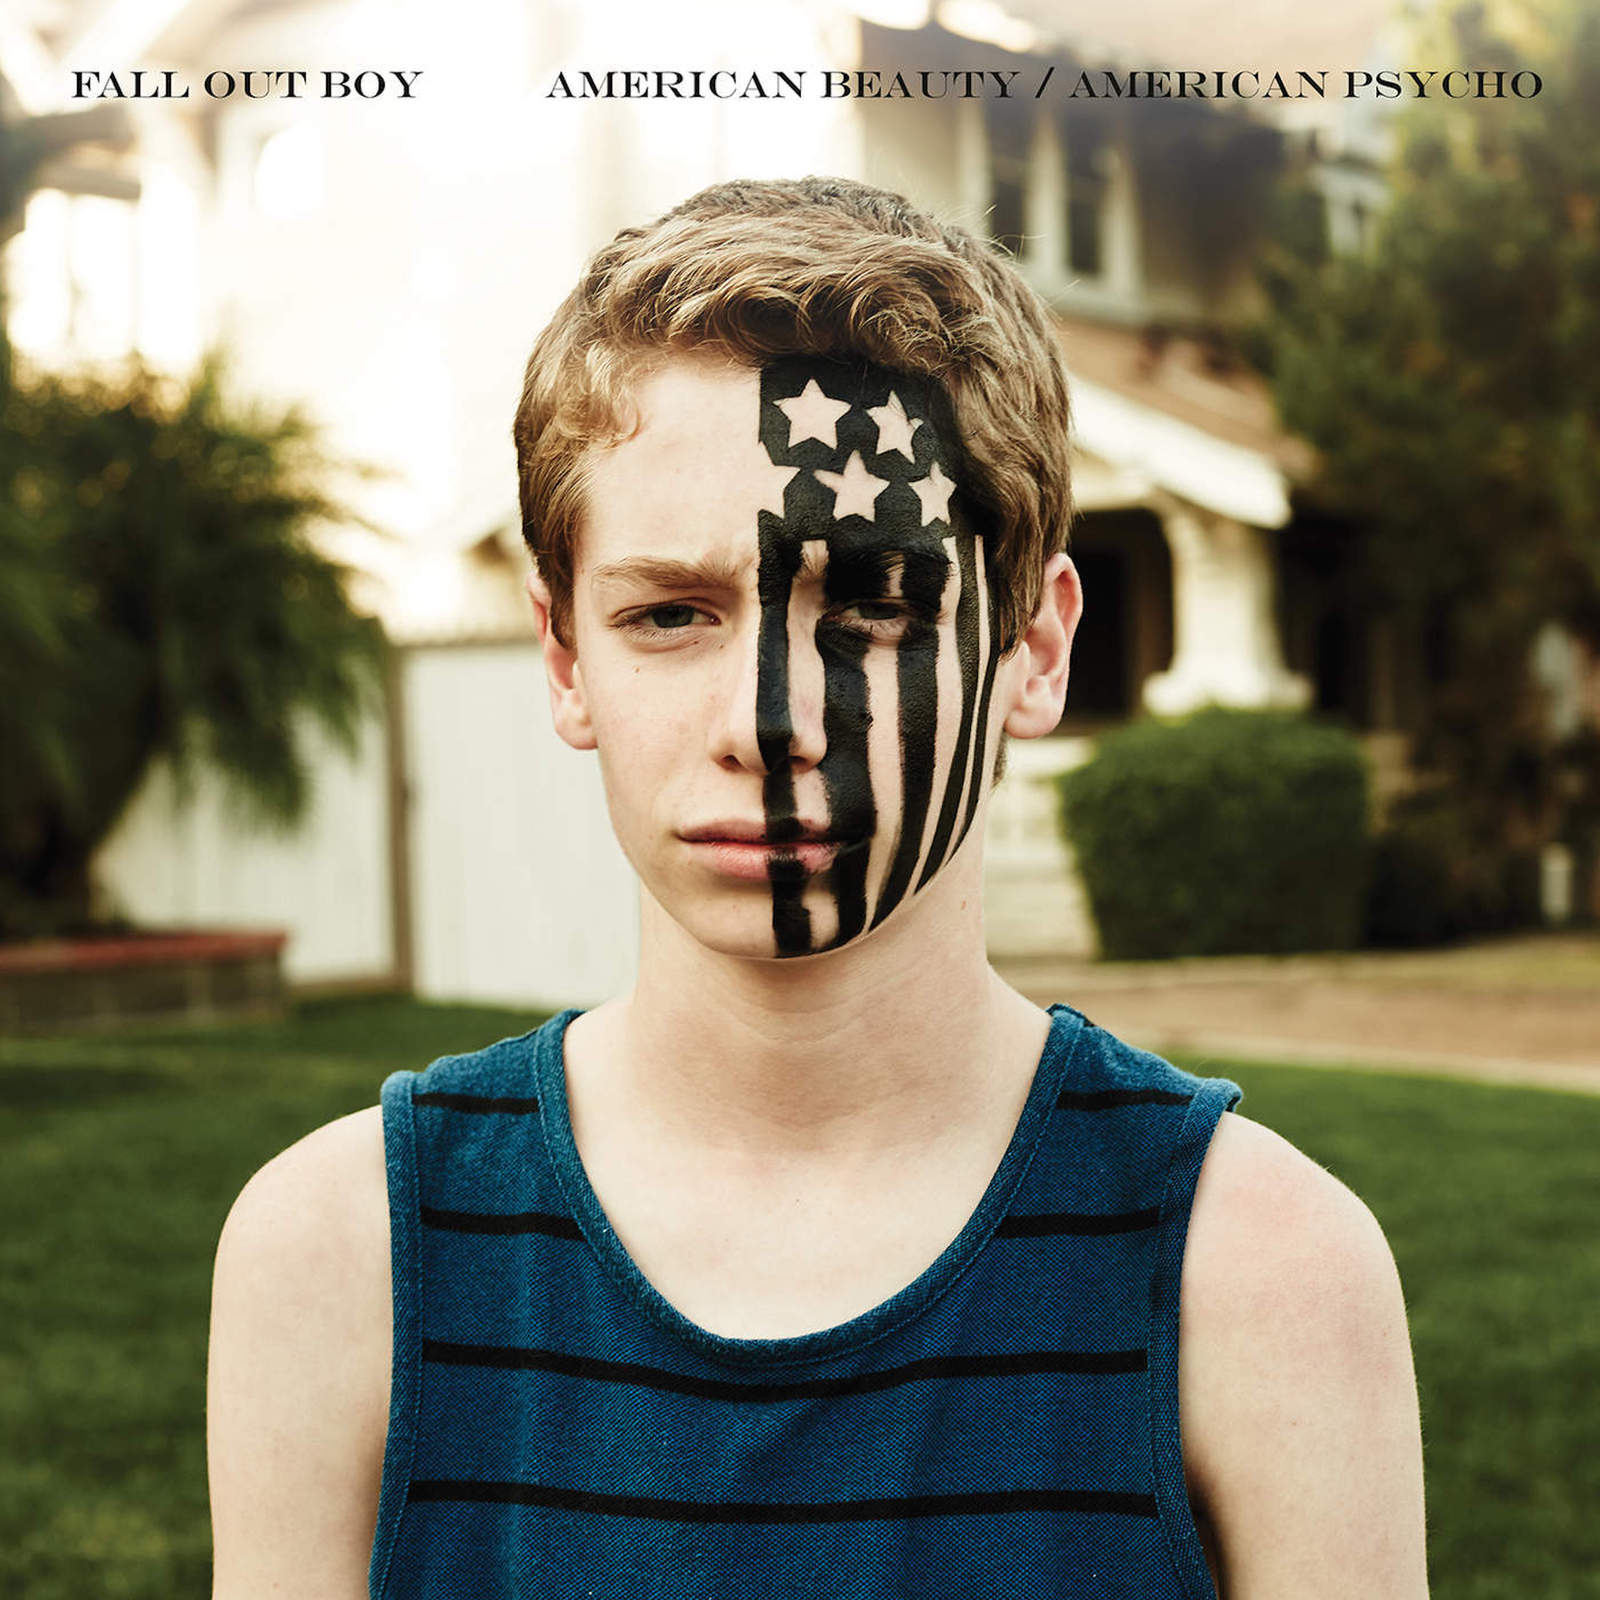 American Beauty/American Psycho by Fall Out Boy image